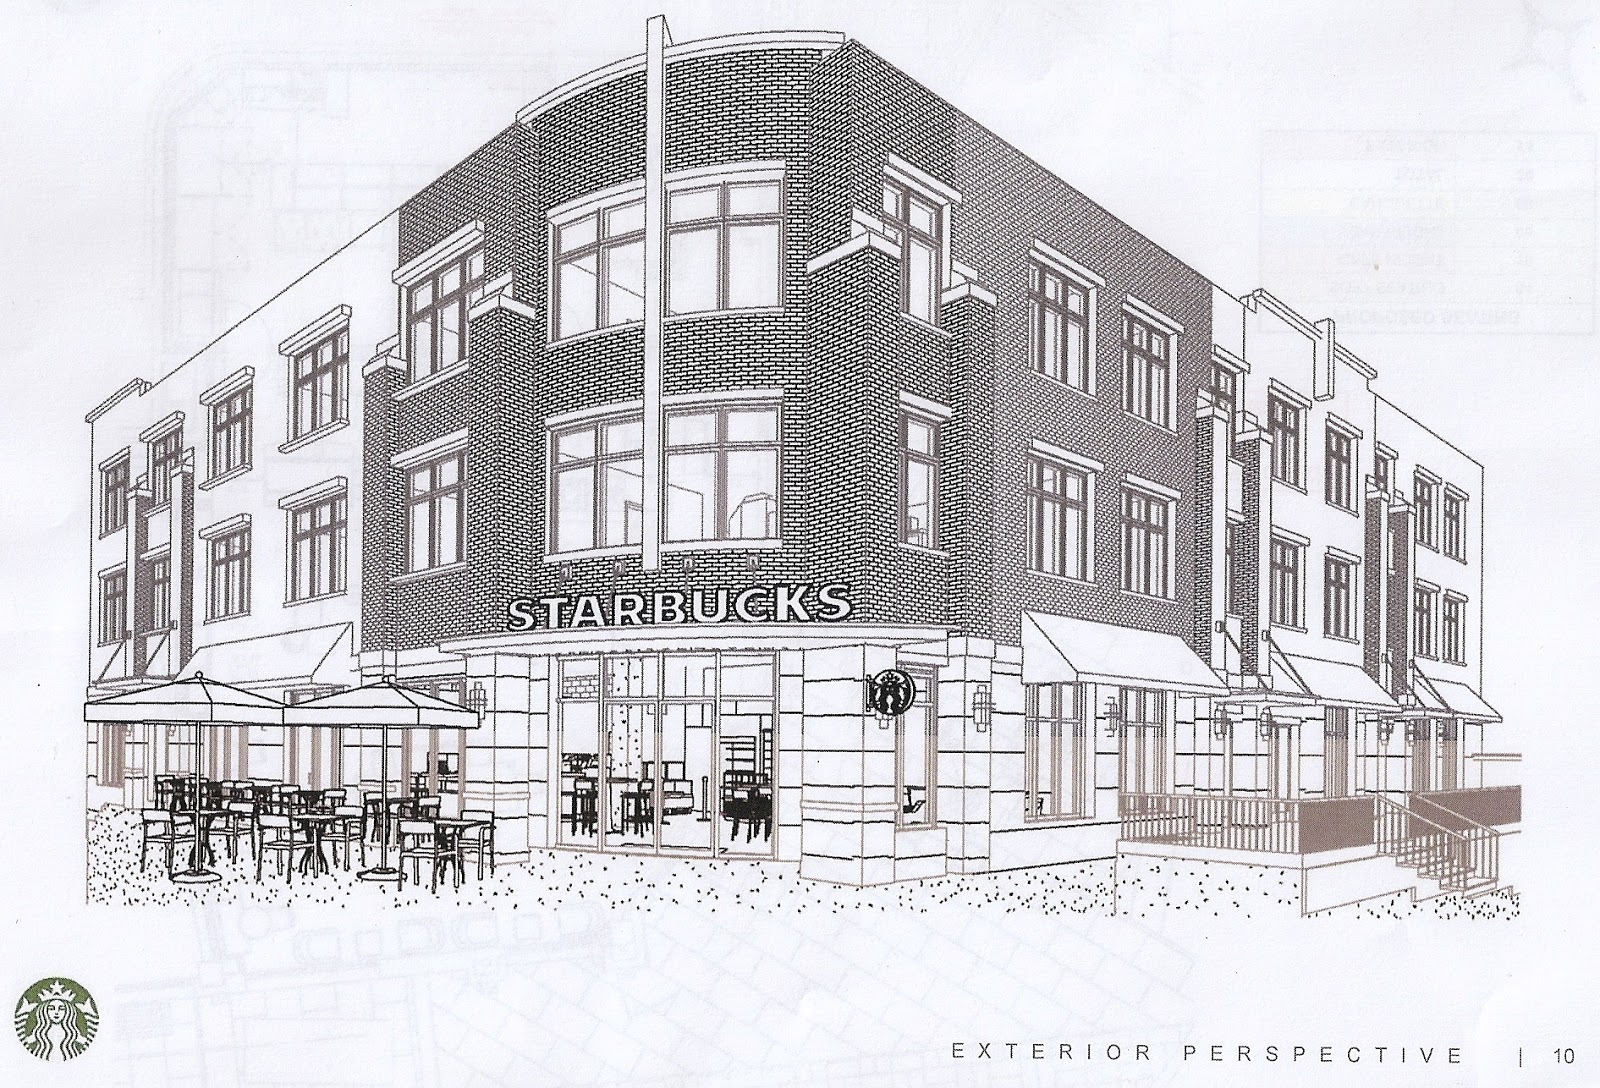 Maplewoodian.com: WHAT THE POST OFFICE PROJECT STARBUCKS WILL BRING